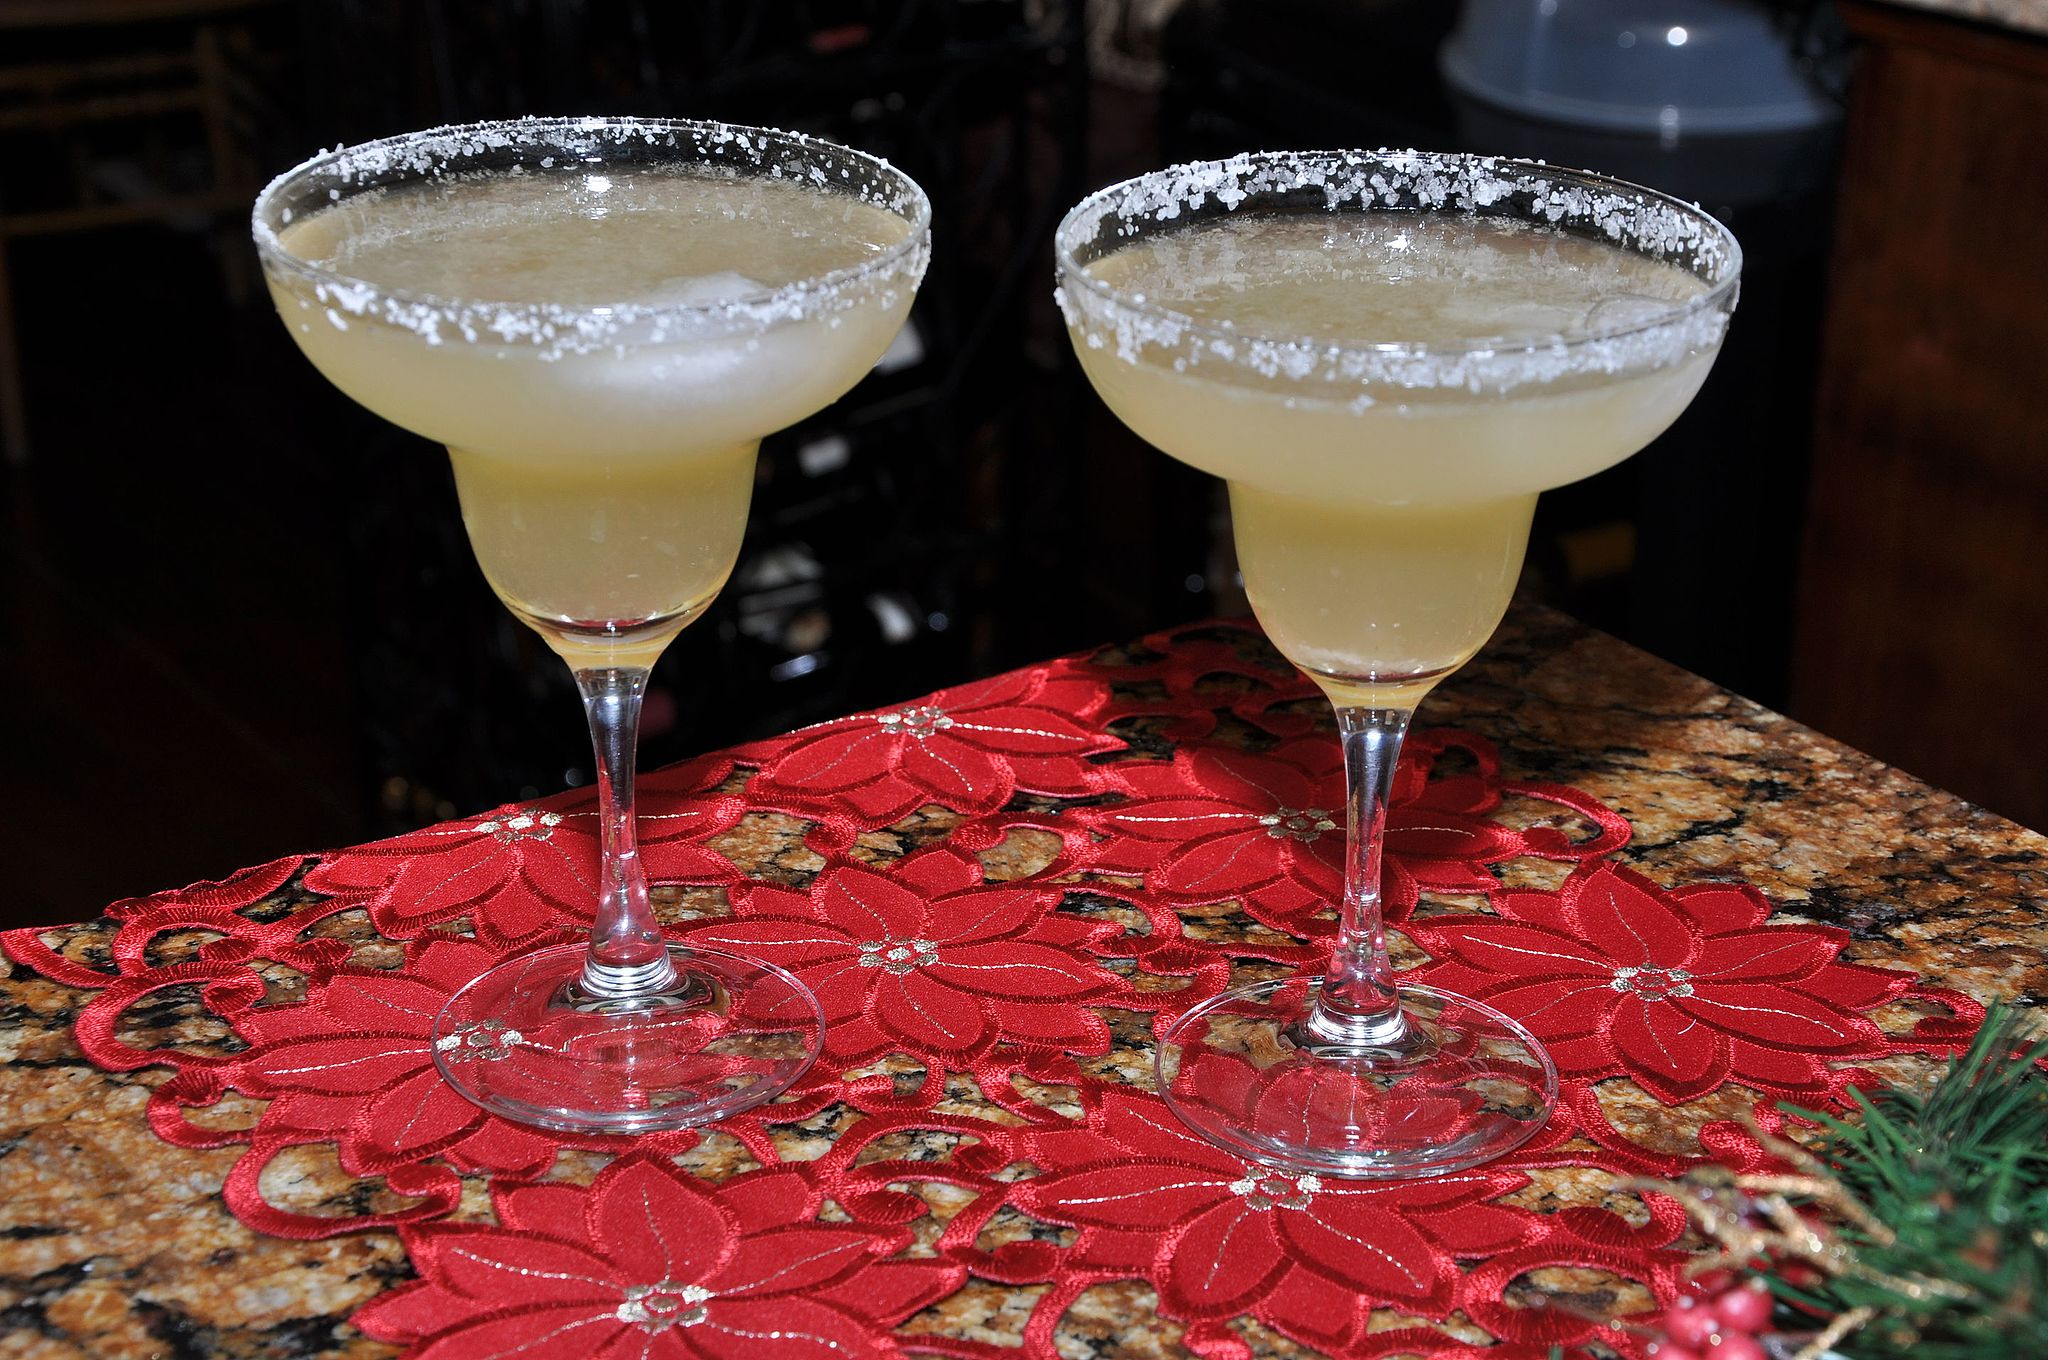 If you want authenticity, use the classic margarita glass | © Rkolarsky/WikiCommons